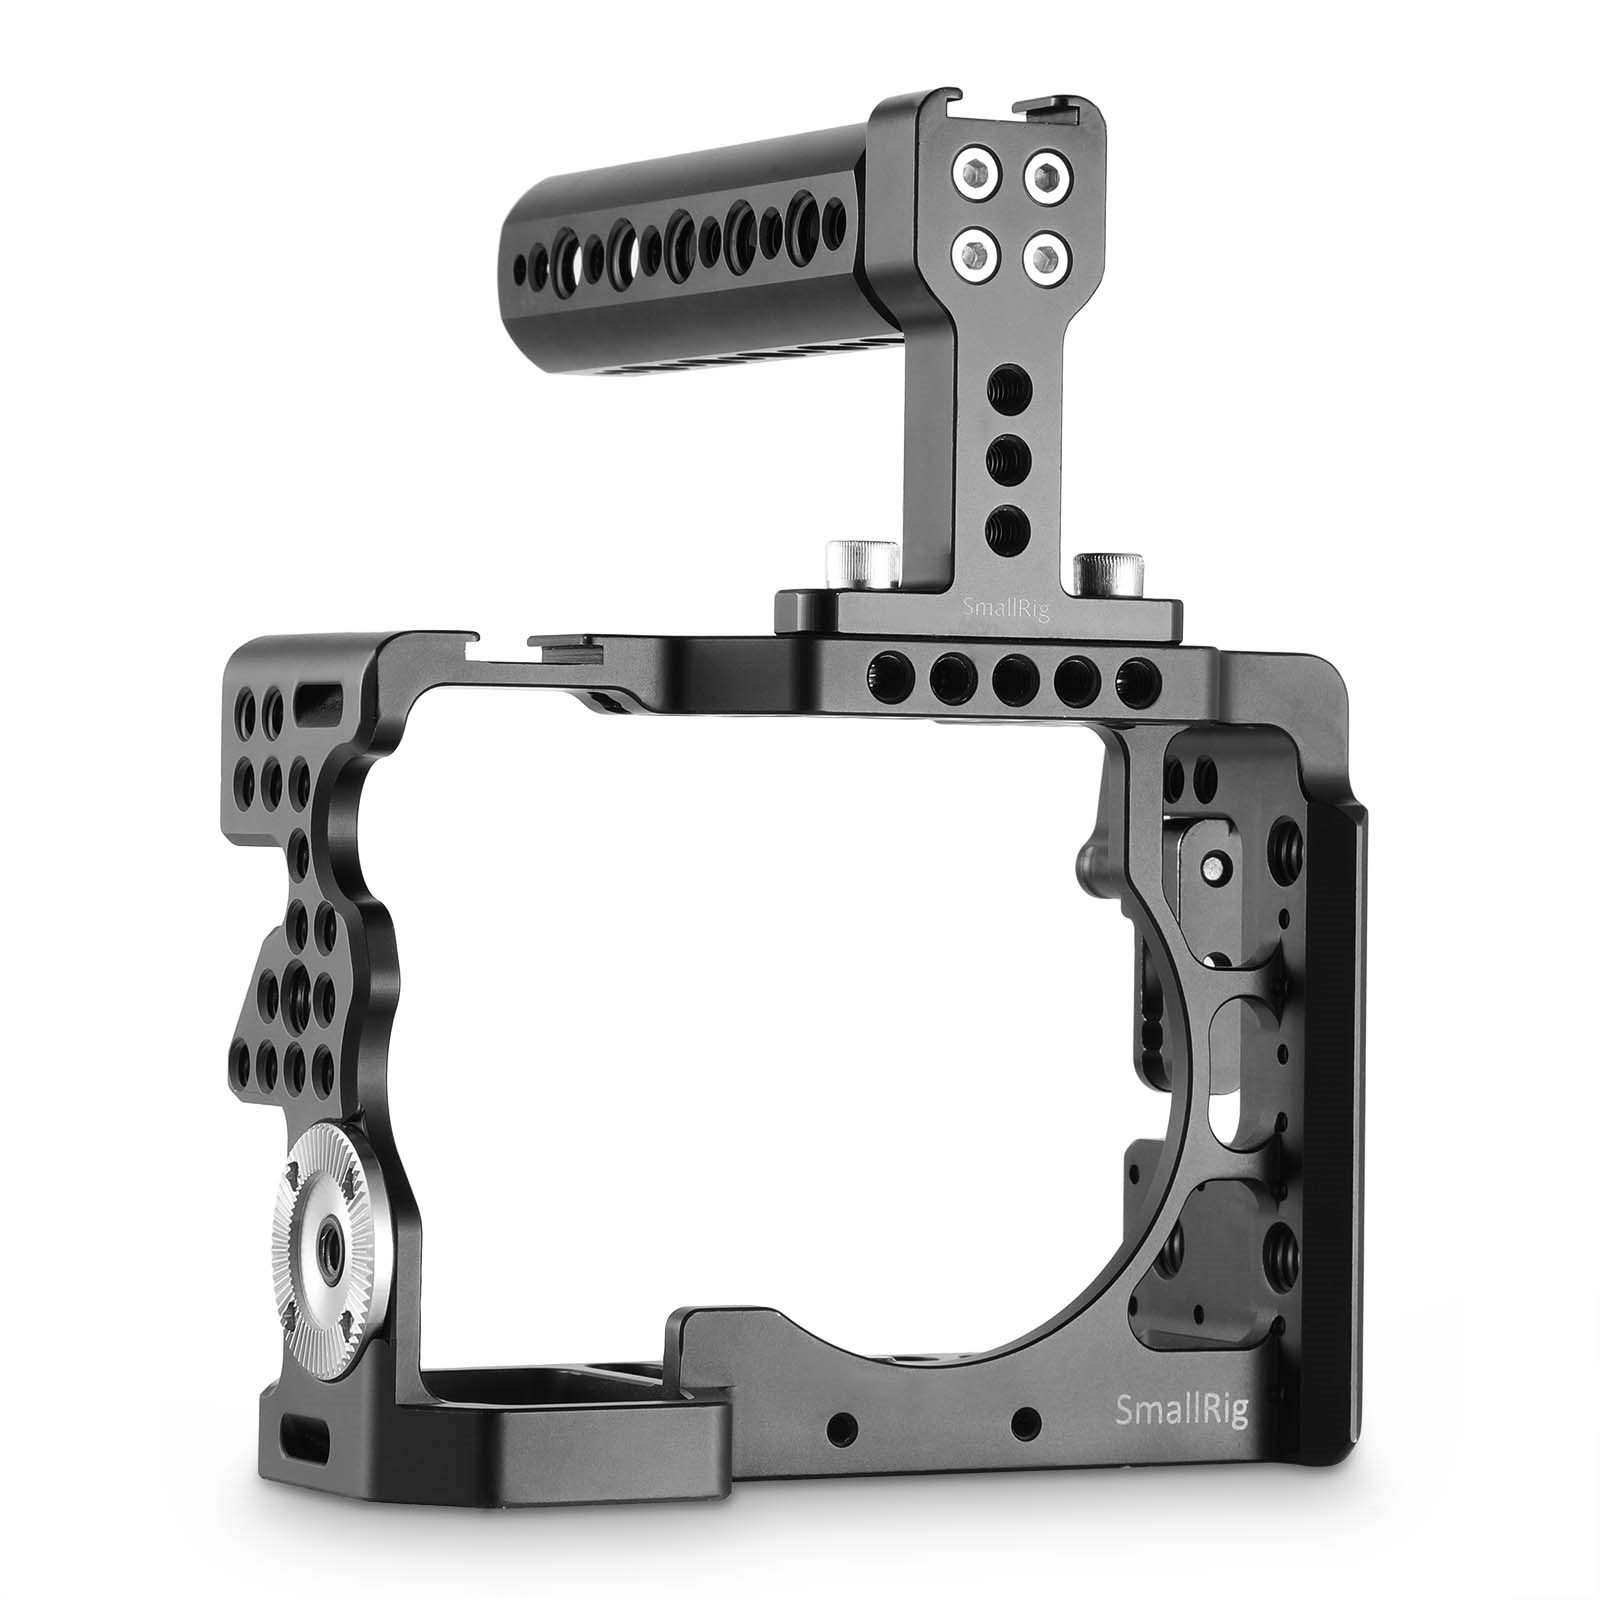 SmallRig Camera Cage for Sony Alpha A7 II/ A7R II/ A7S II Mirrorless Digital Camera with Top Handle and HDMI Cable Lock - 2014 by SmallRig